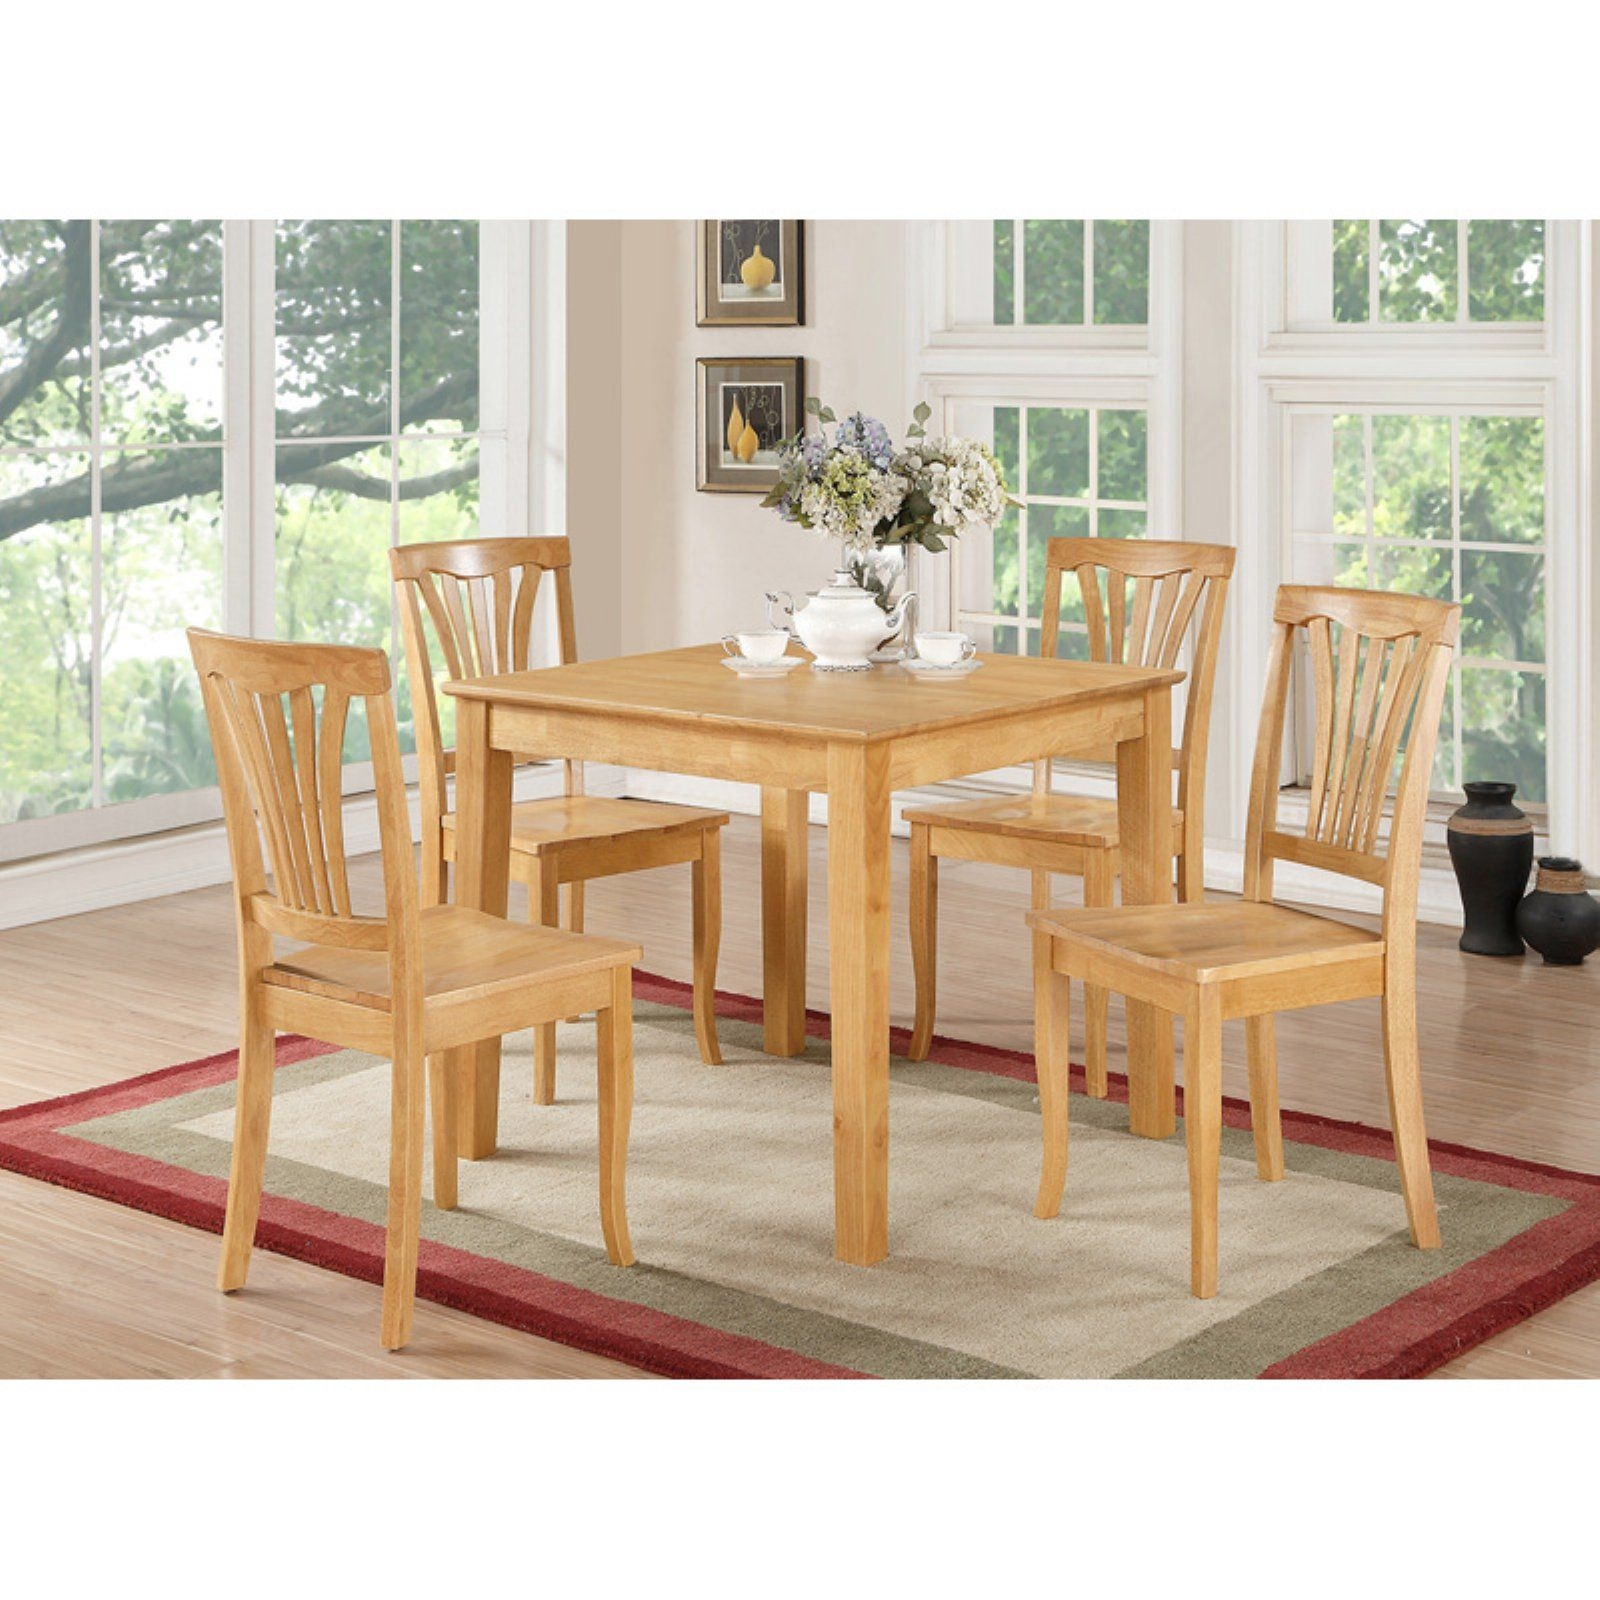 East West Furniture 5 Piece Lath Back Breakfast Nook Dining Table Set  Walmart